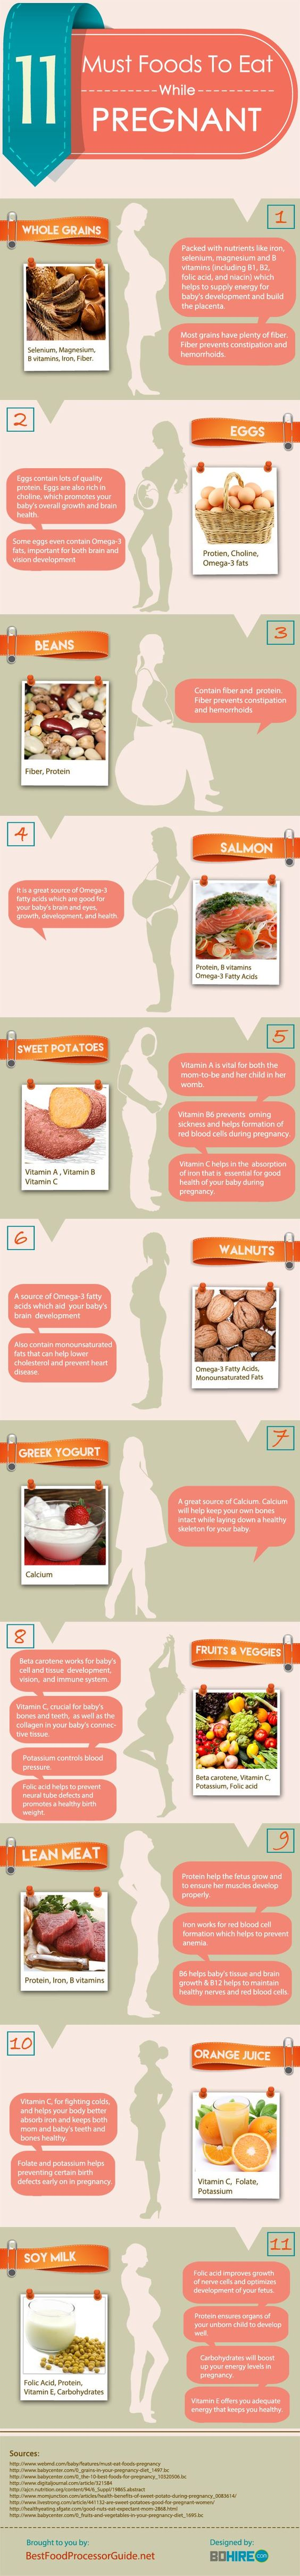 List of Healthy Foods to eat during the second trimester of Your Pregnancy